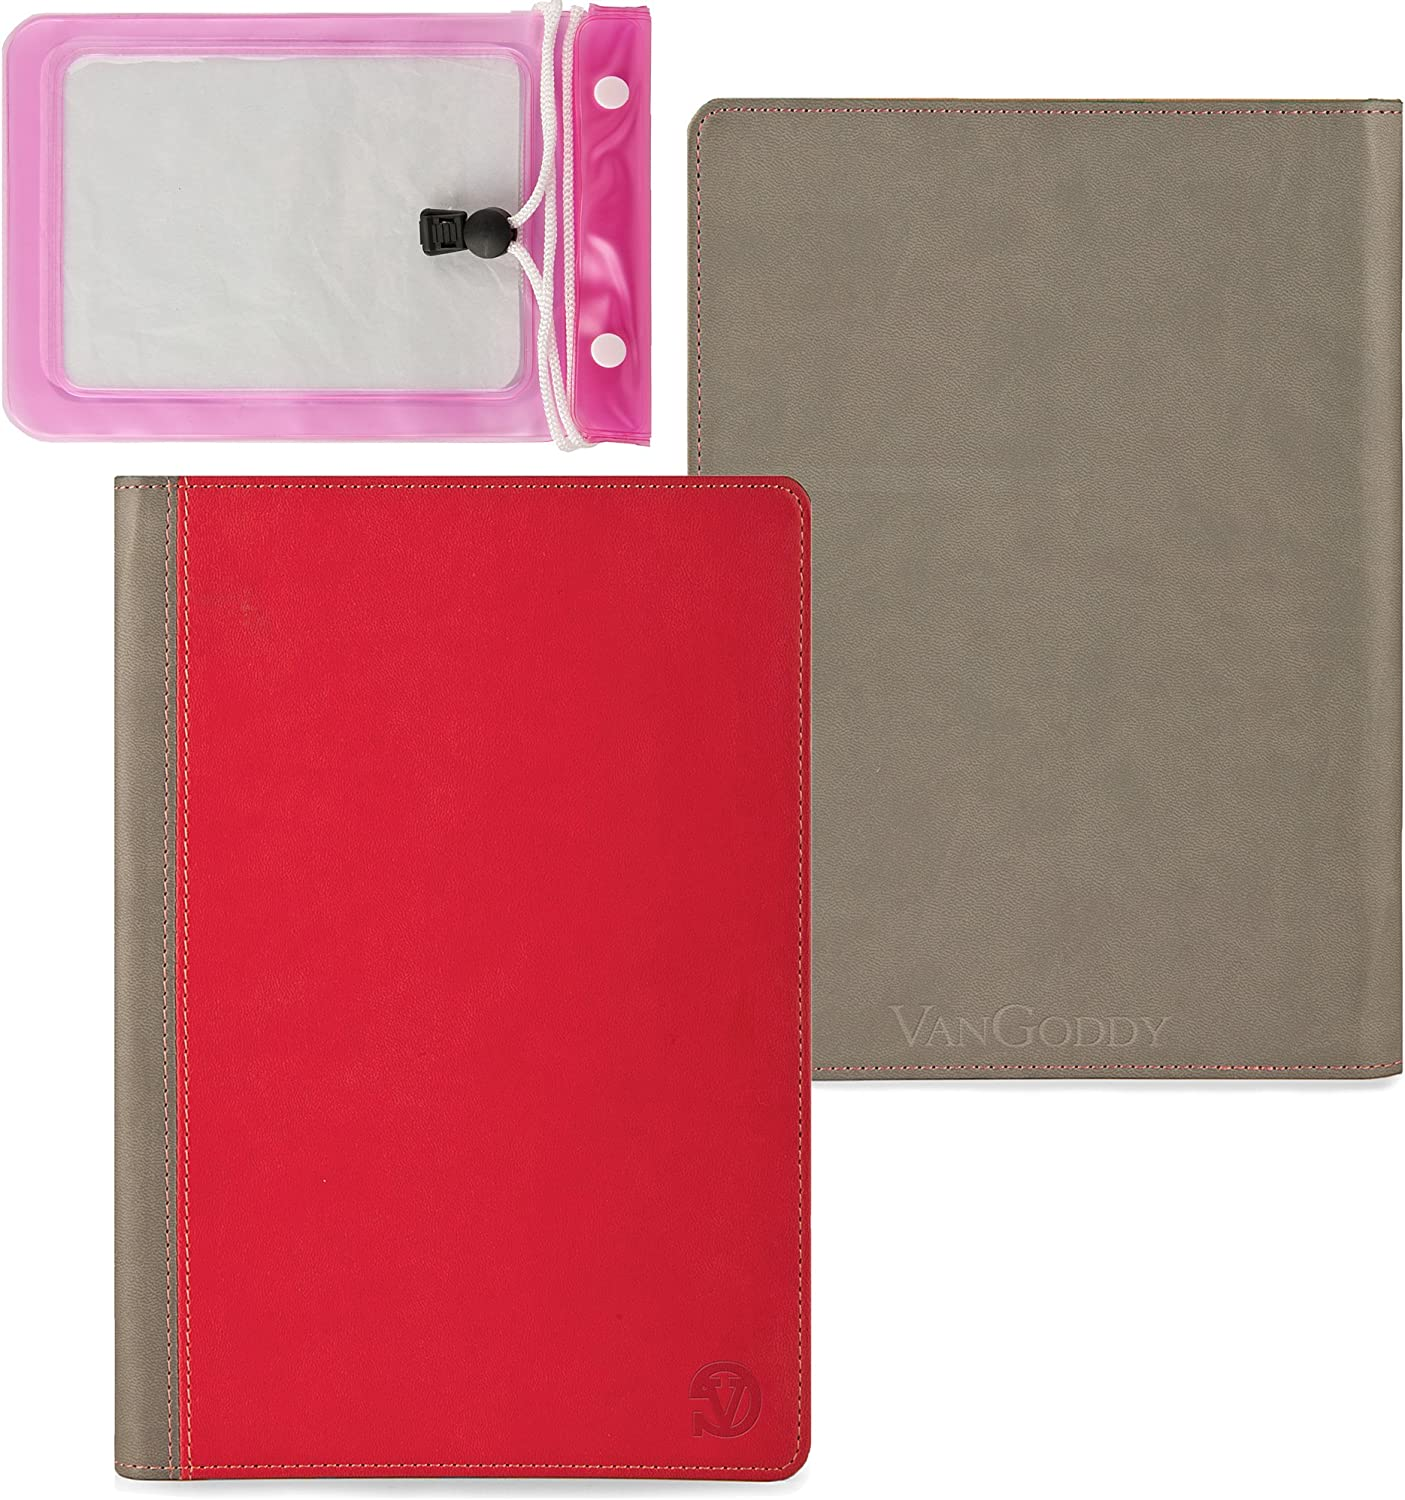 Quality Book Style, Pastel Magenta on Heather Gray Vangoddy Brand Mary Collection Leather -ette Portfolio Cover Cases for All Models of the Acer Iconia Tab w510 10.1 Inch Windows 8 Tablet + 10 Inch Tablet Waterproof Bag Case